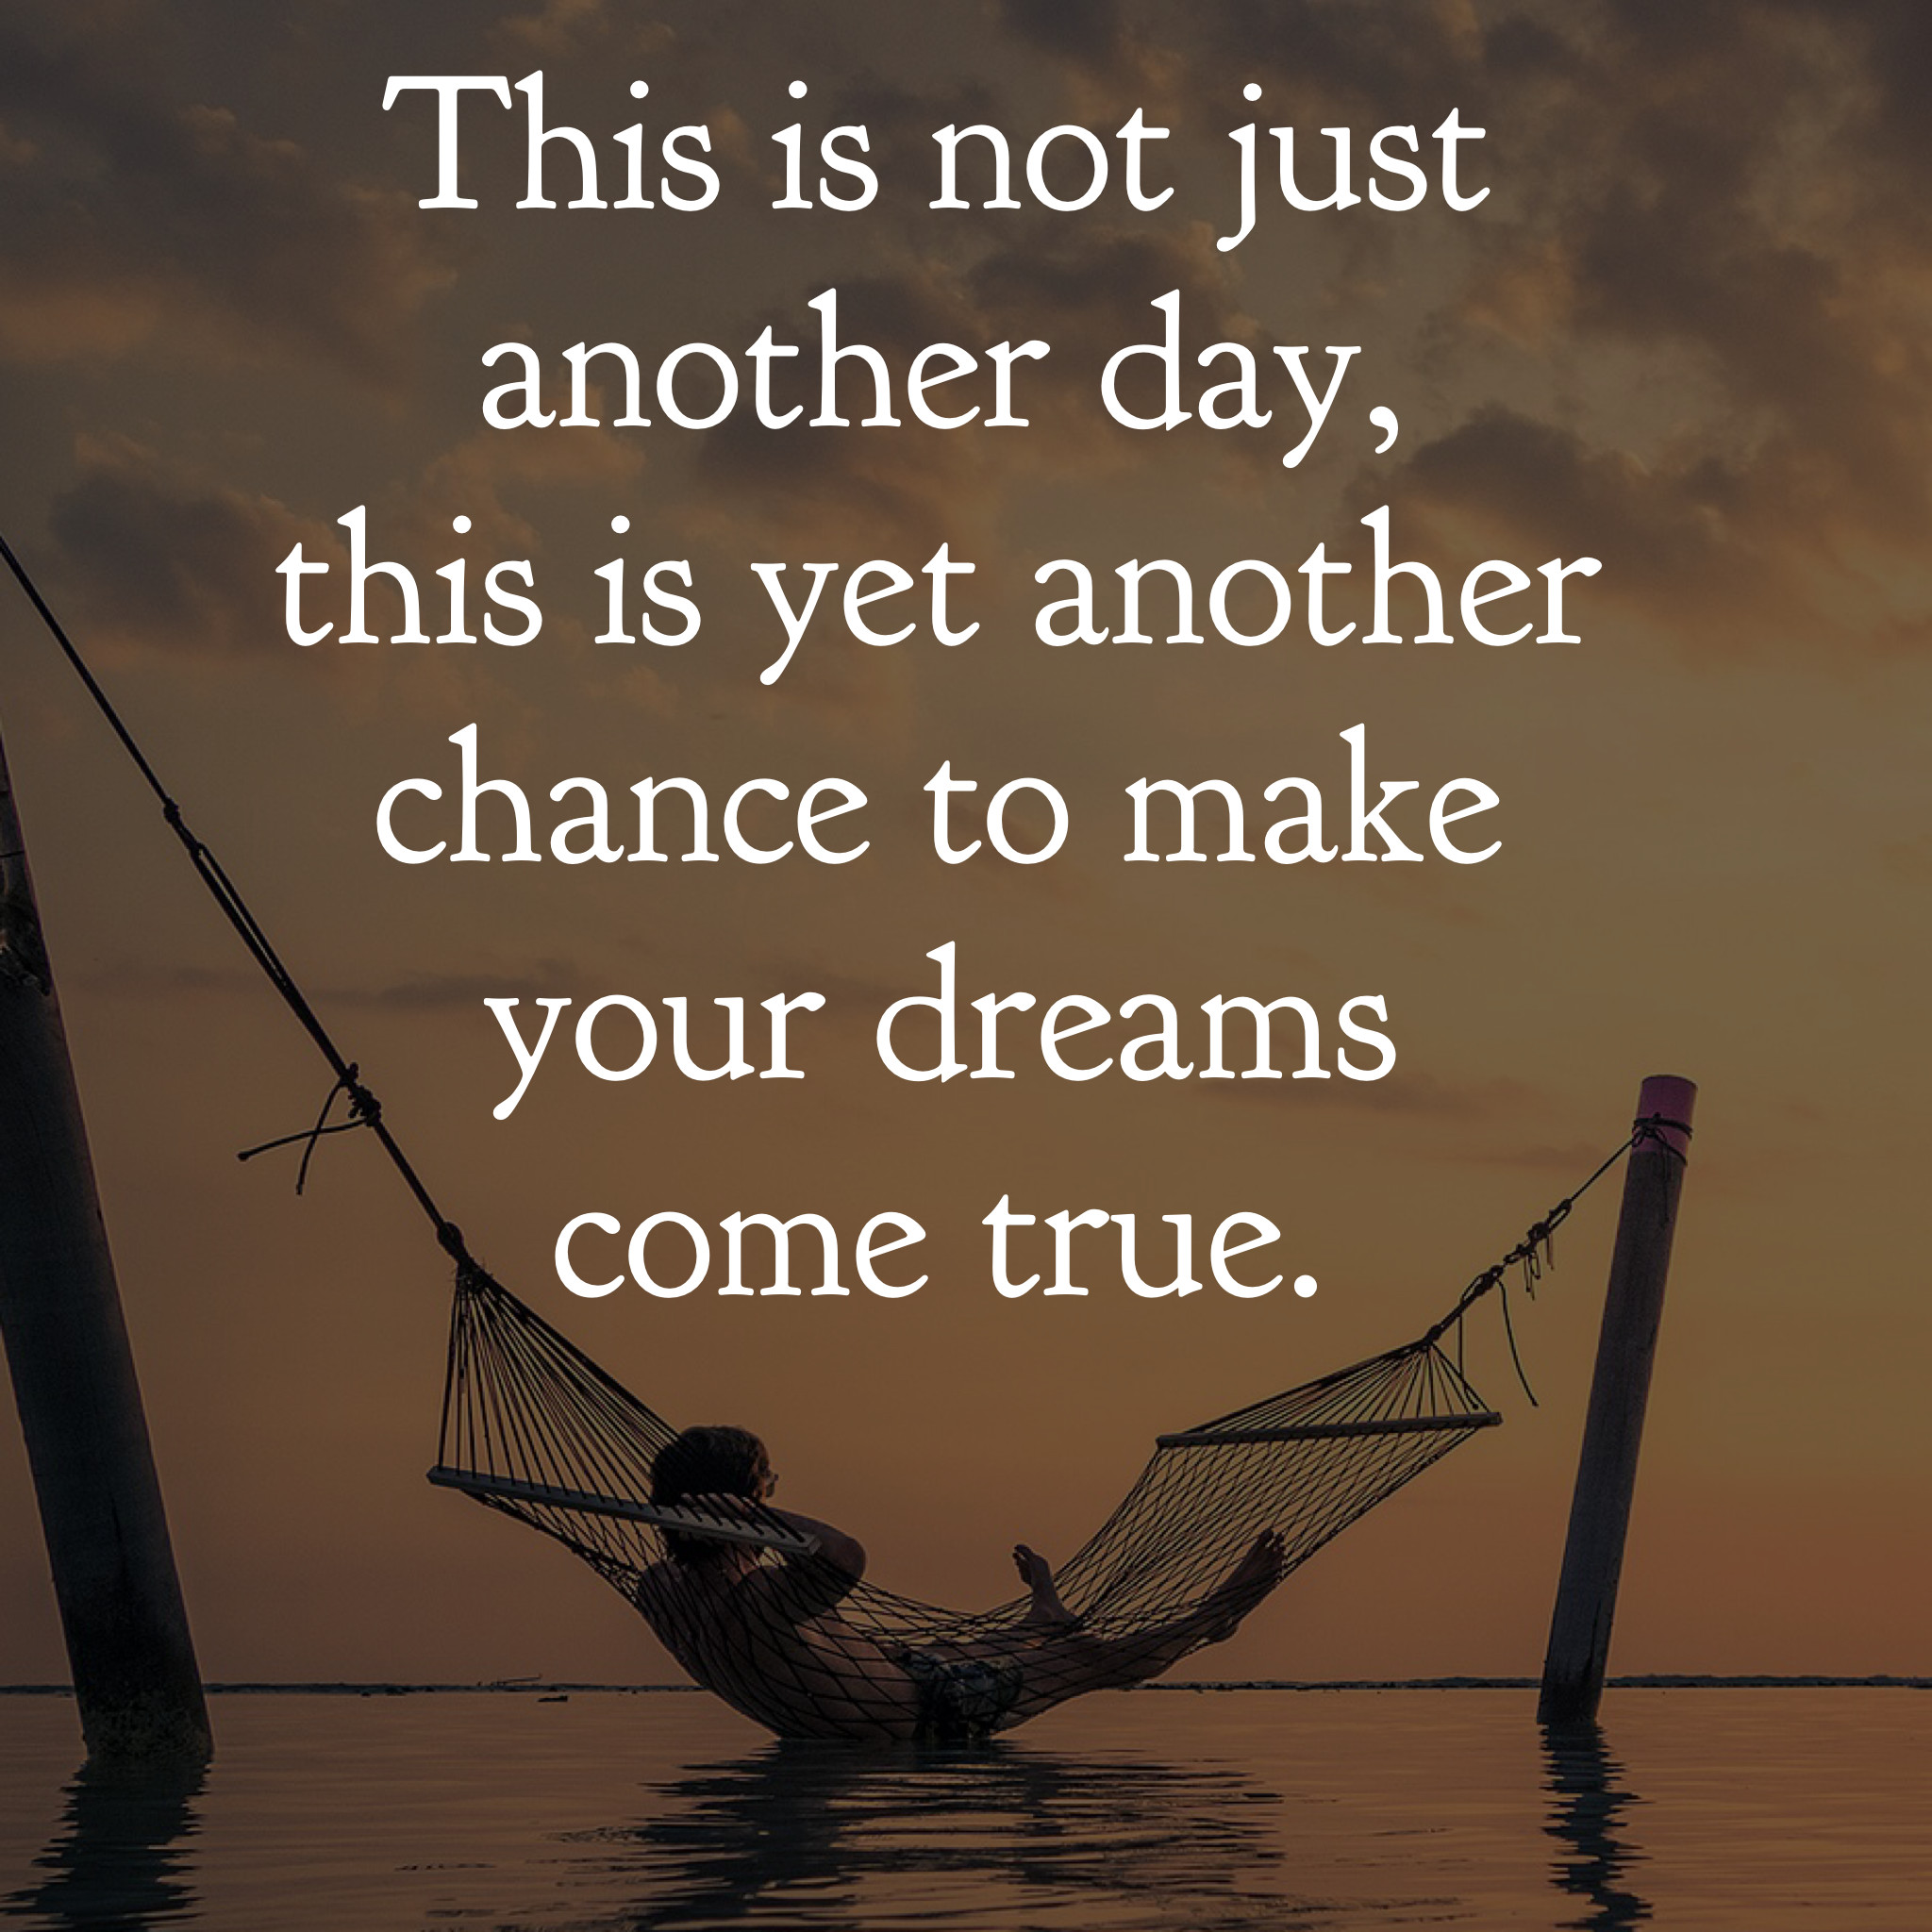 Motivational Morning Quotes  30 Highly Motivational Morning Quotes